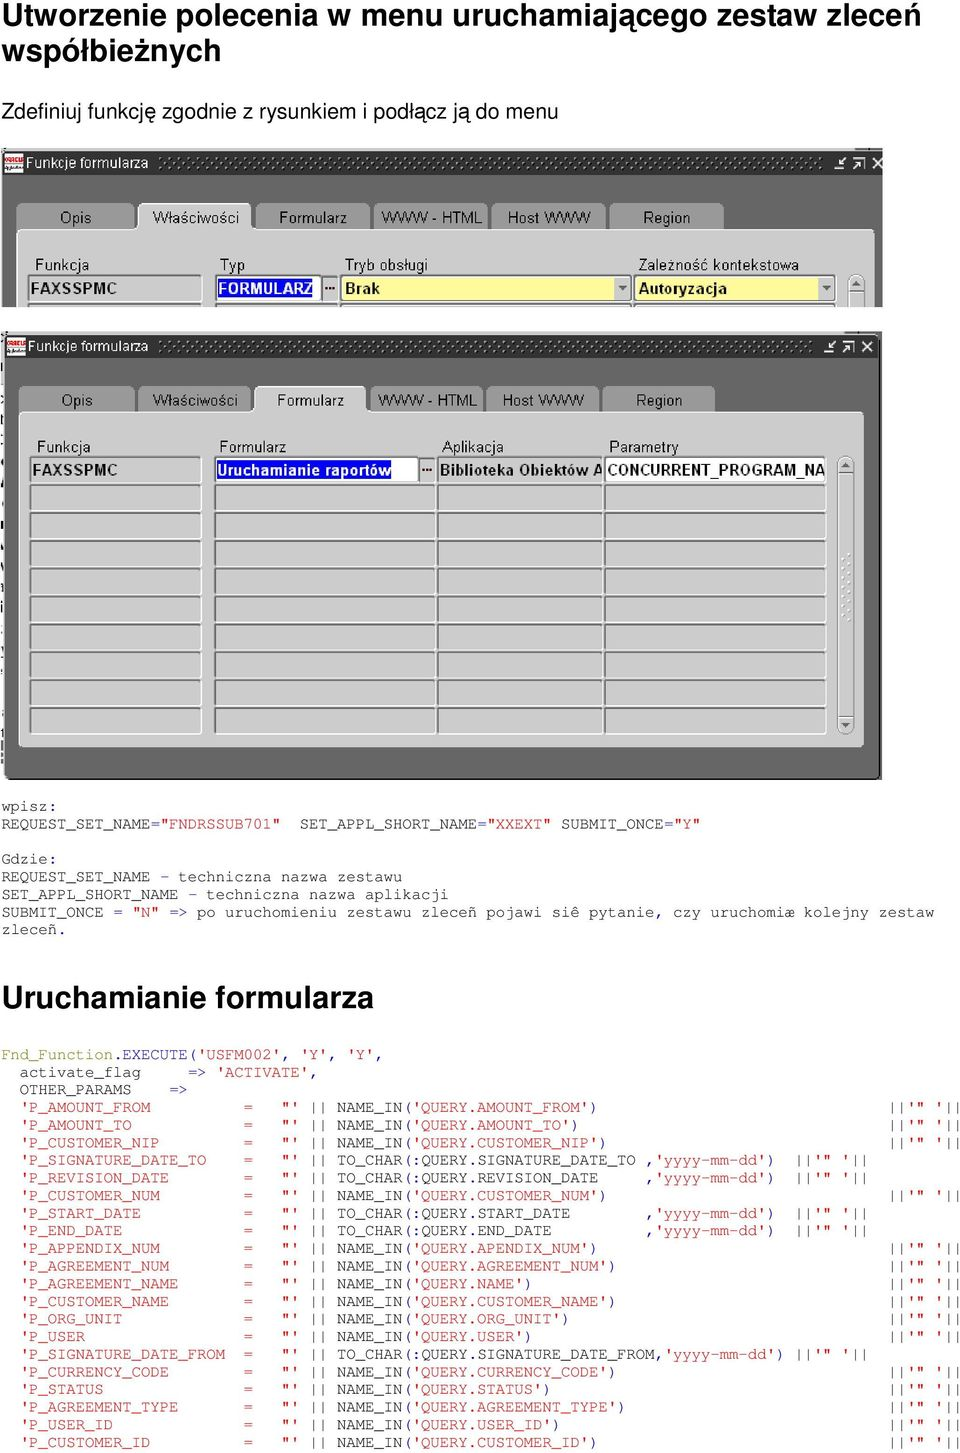 "uruchomiæ kolejny zestaw zleceñ. Uruchamianie formularza Fnd_Function.EXECUTE('USFM002', 'Y', 'Y', activate_flag => 'ACTIVATE', OTHER_PARAMS => 'P_AMOUNT_FROM = ""' NAME_IN('QUERY."